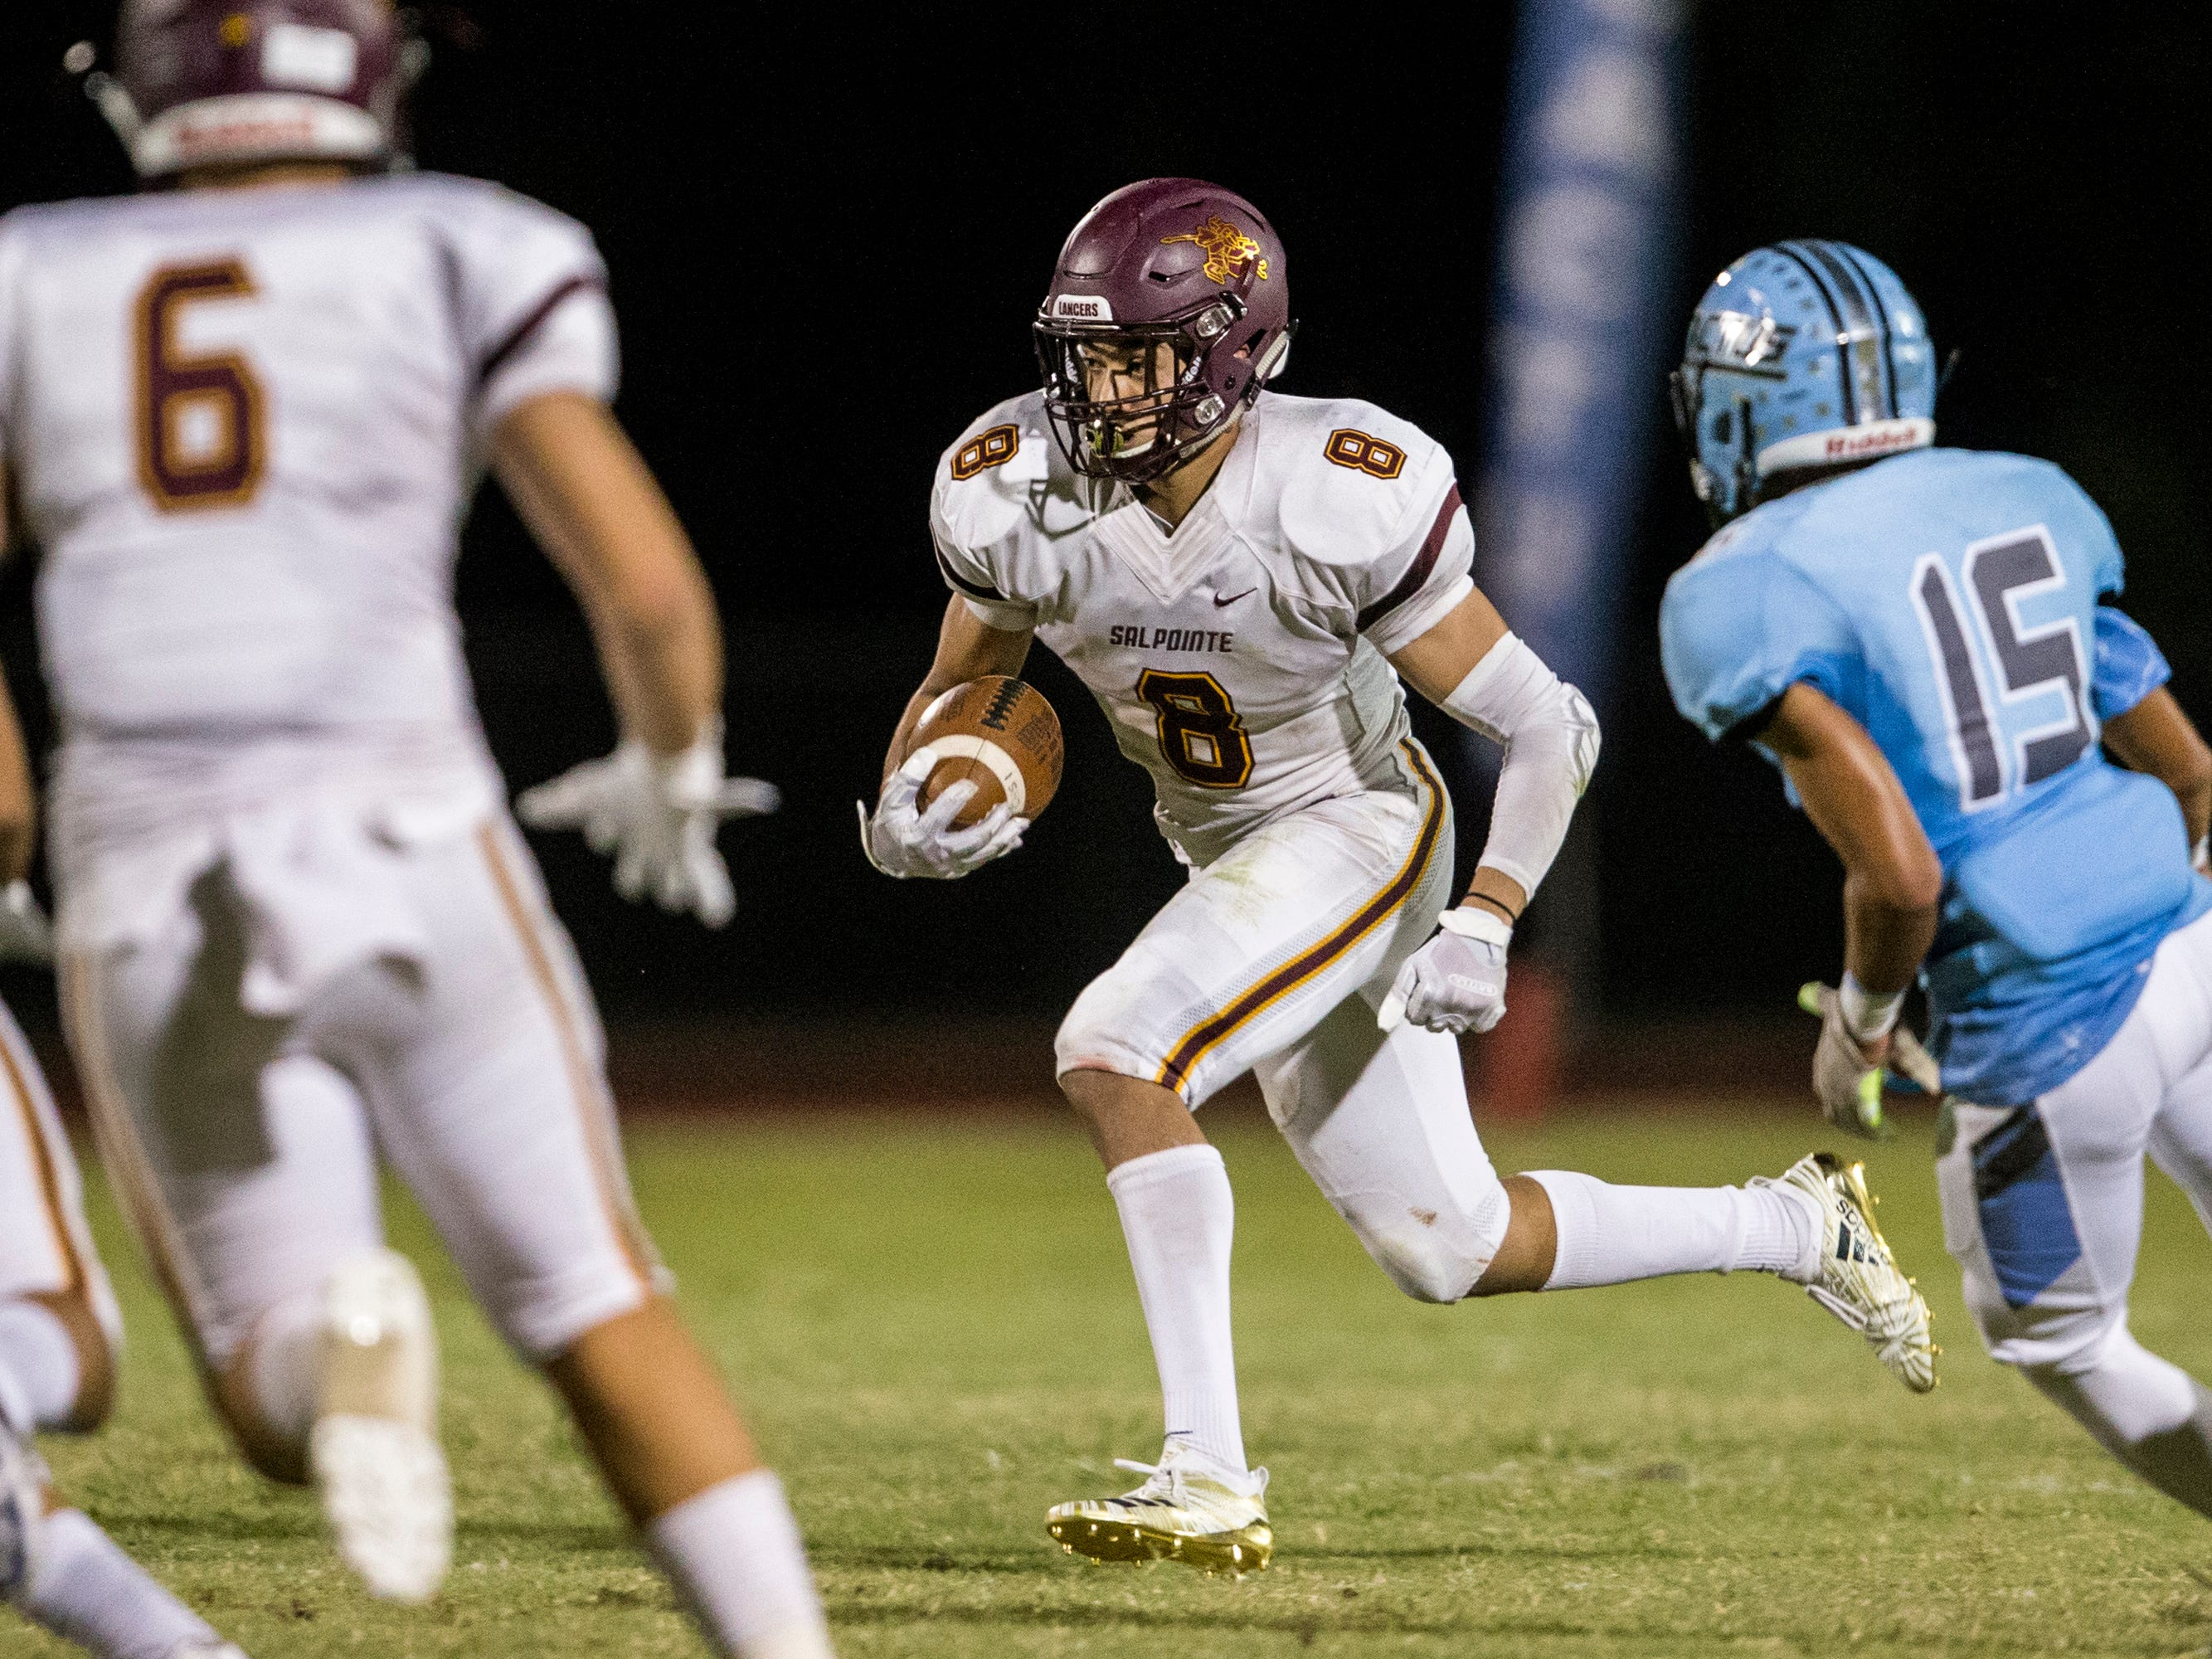 Salpointe's Lathan Ransom rushes against Cactus in the 2nd quarter on Friday, Sept. 14, 2018, at Cactus High School in Glendale, Ariz.#azhsfb